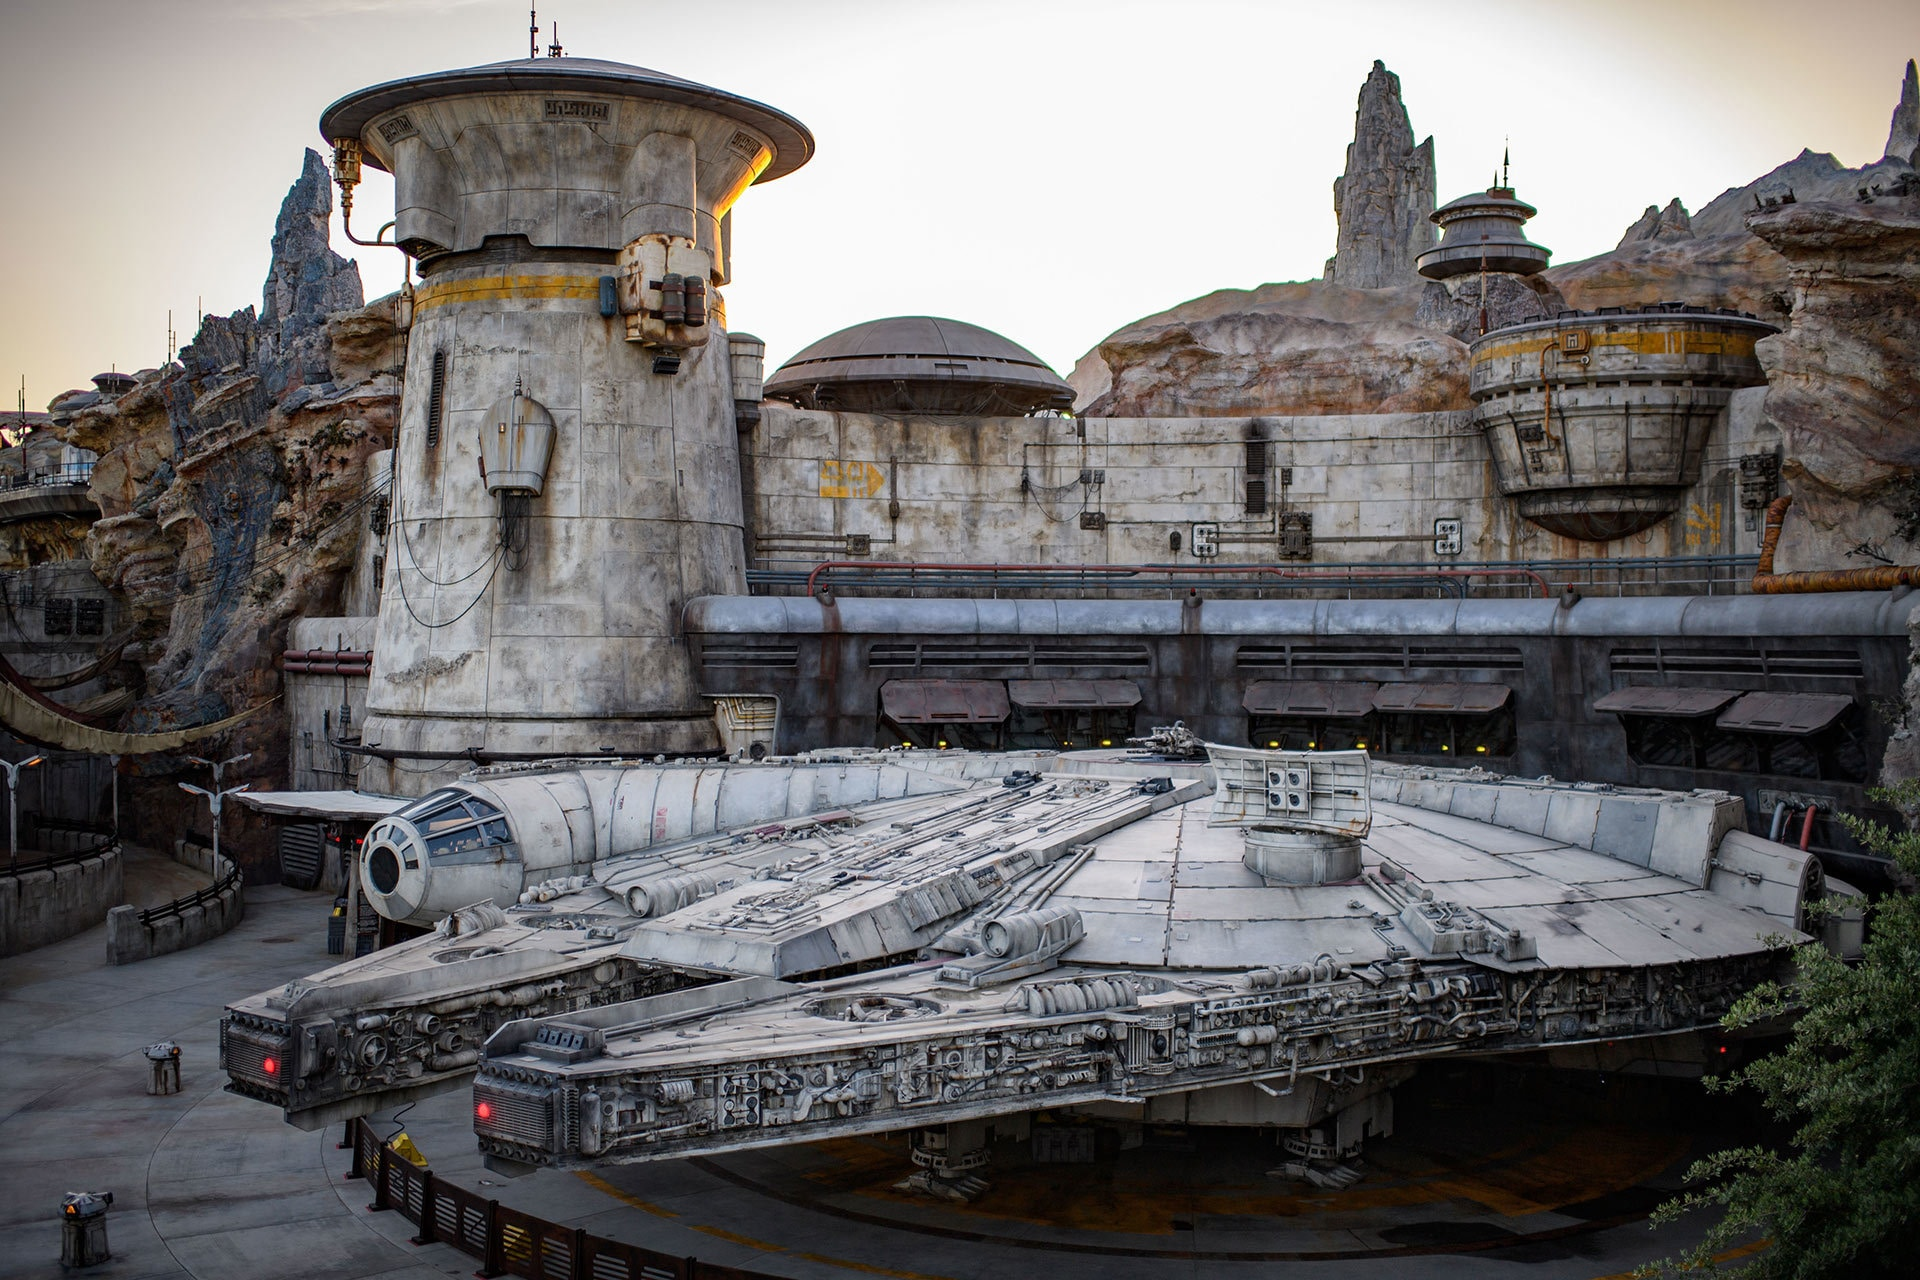 The Millennium Falcon docked in the Black Spire Outpost Spaceport measures more than 100 feet long.